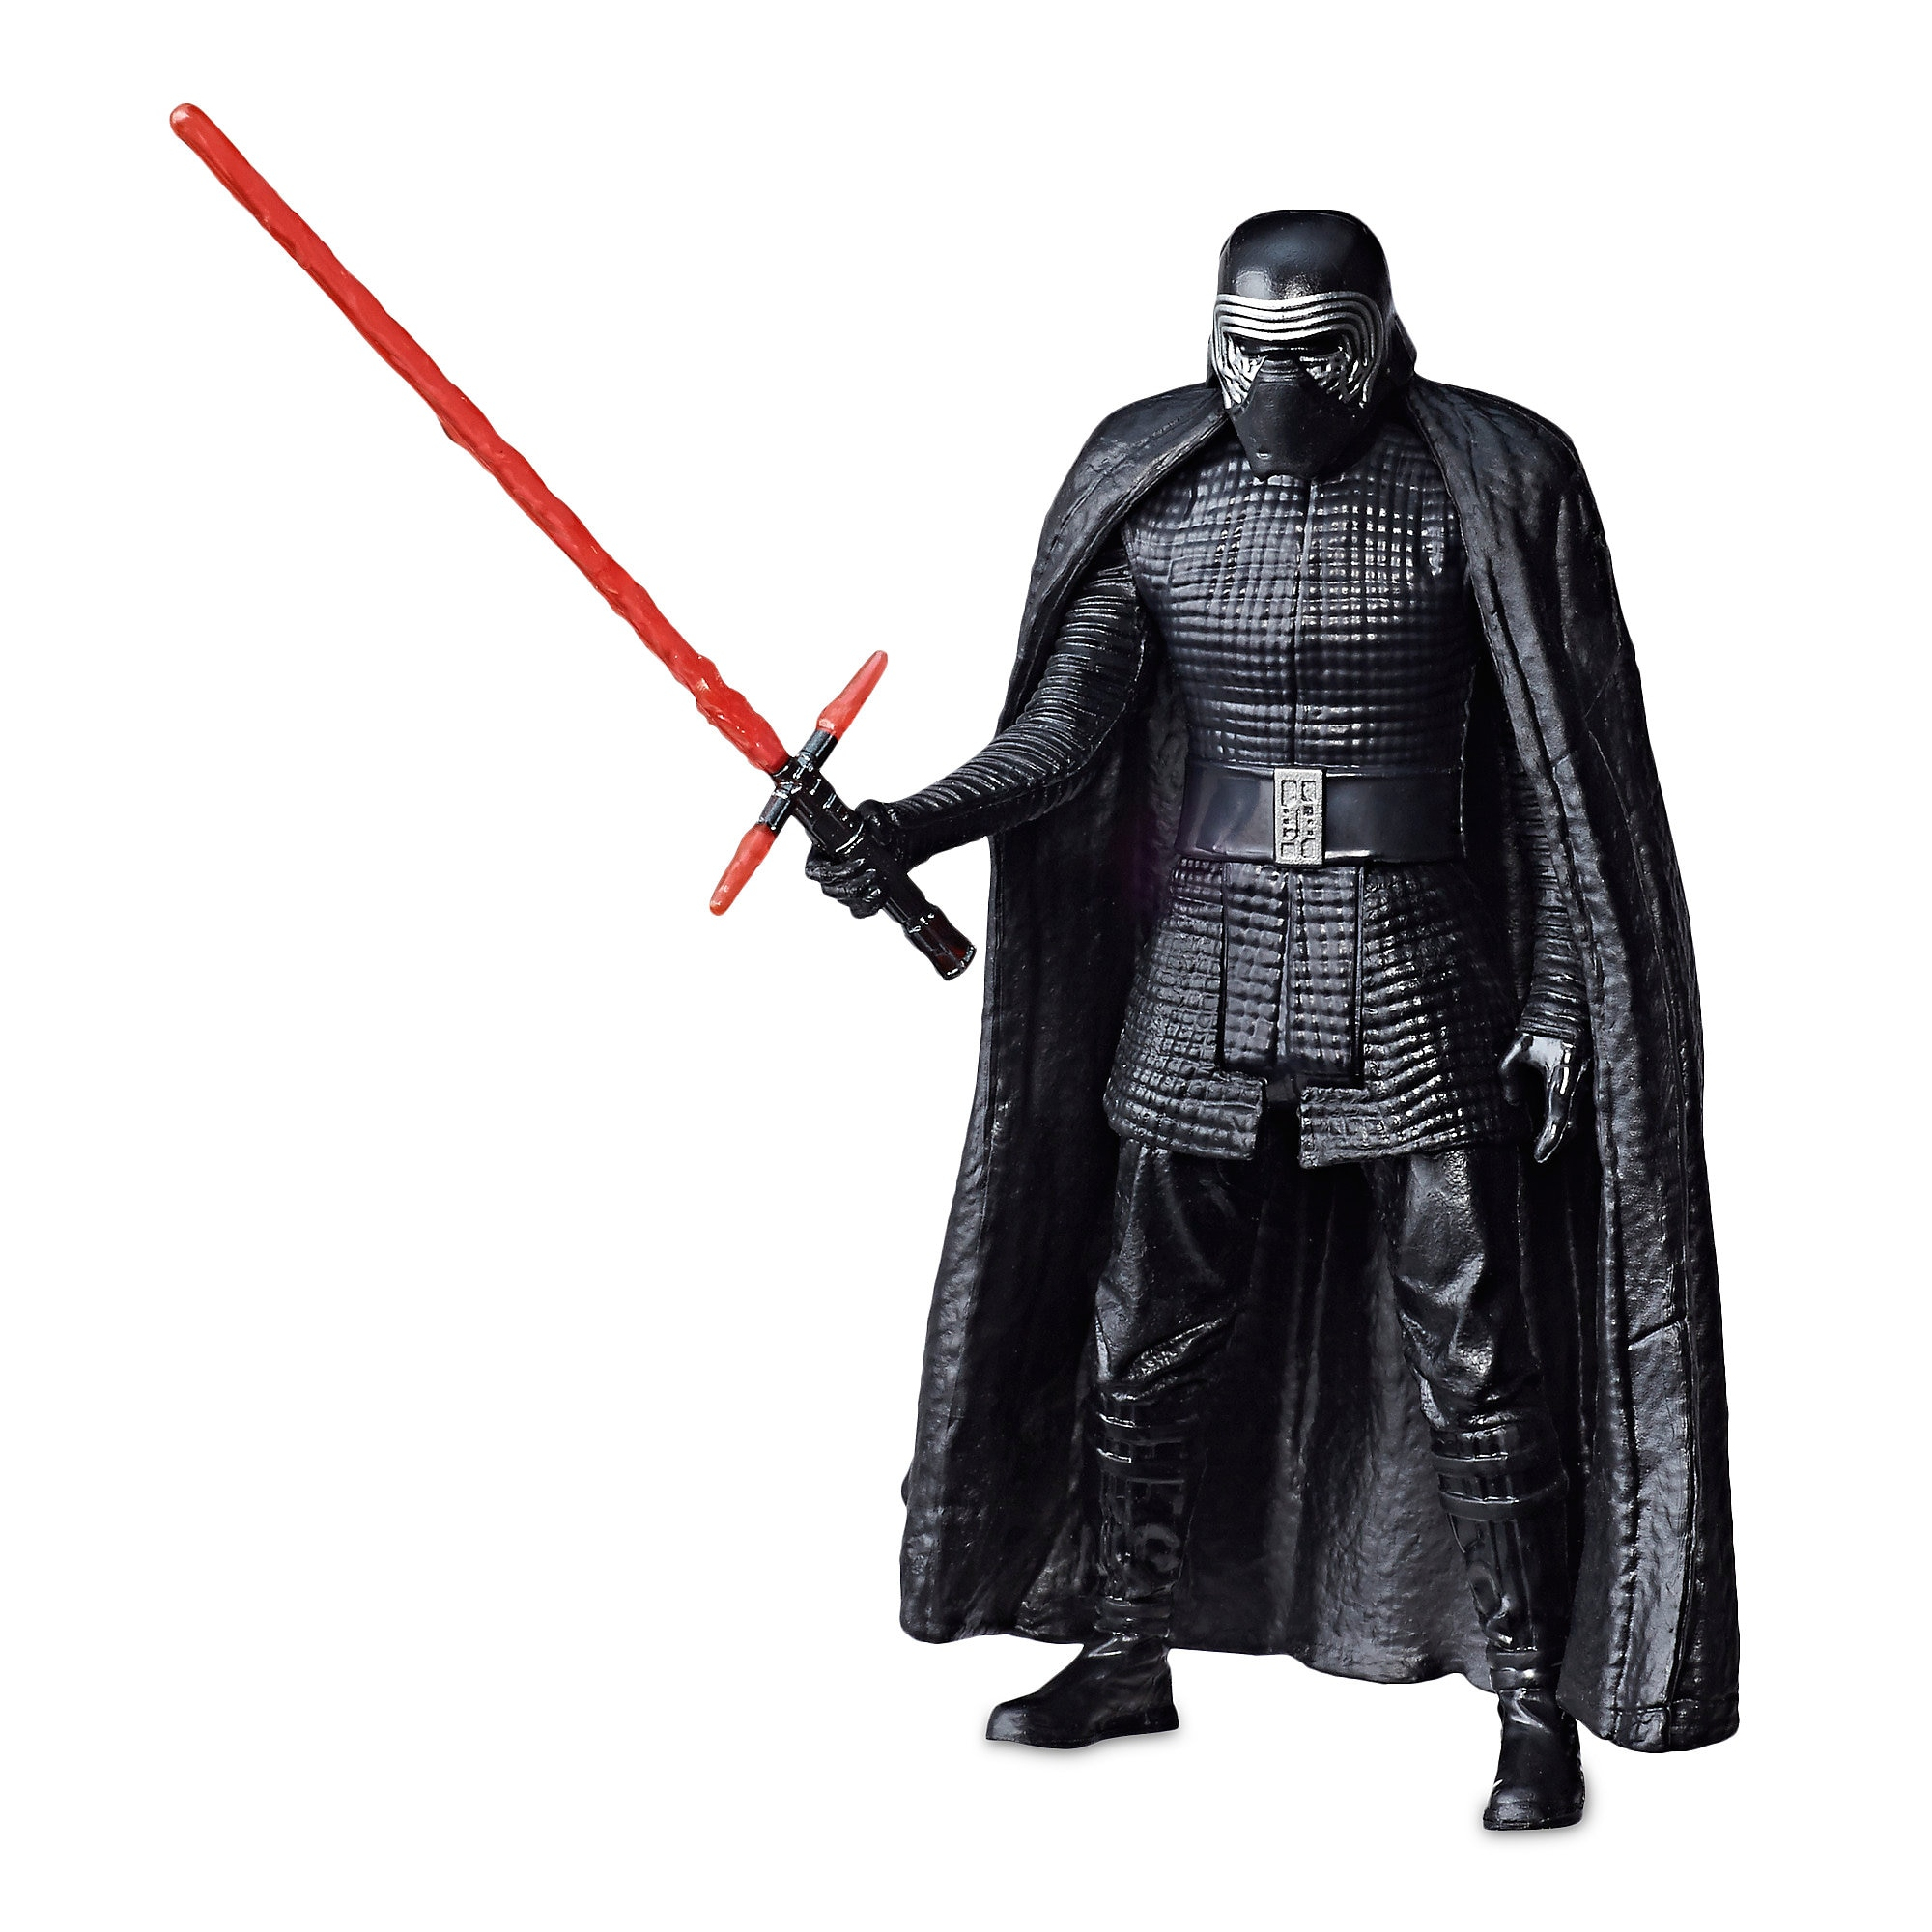 Kylo Ren Force Link 2.0 Action Figure by Hasbro - Star Wars